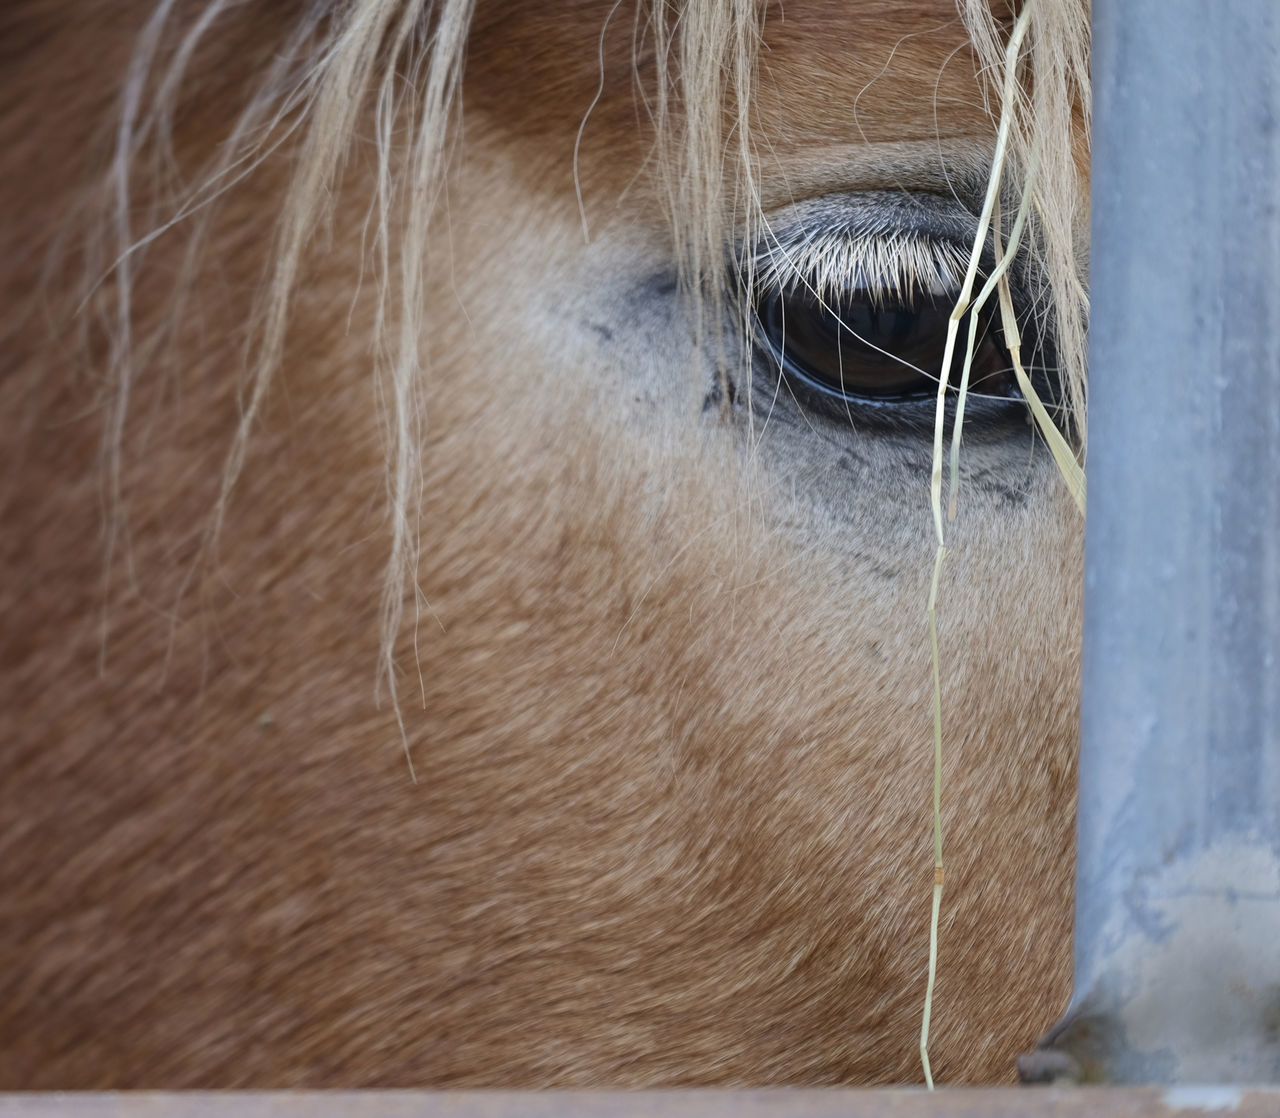 Animal Body Part Animal Themes Close-up Day Domestic Animals Eye Eye Of A Hors Horse Livestock Mammal Mane Nature No People One Animal Outdoors Working Animal